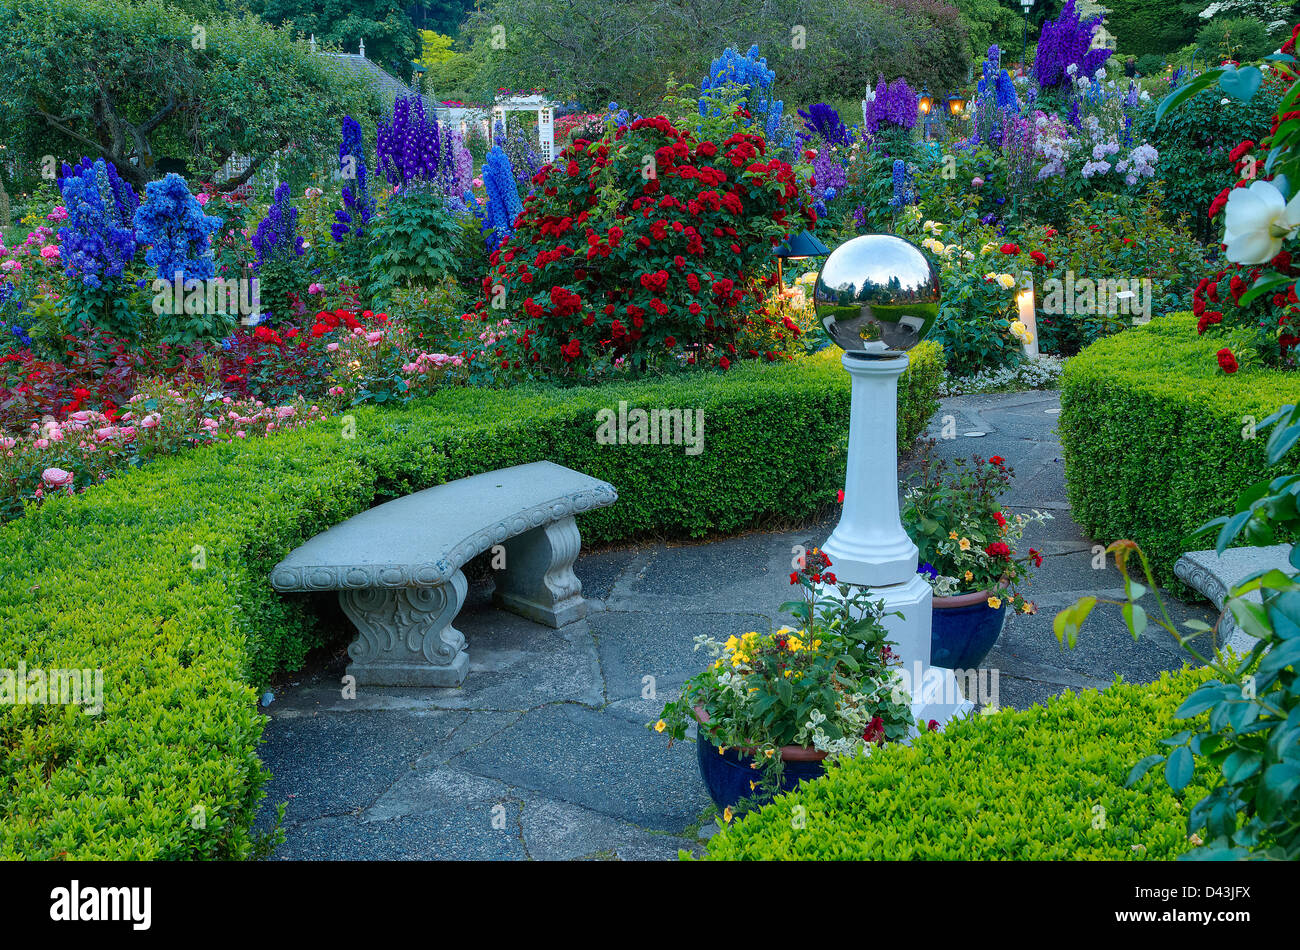 Metal orb in the Rose Garden, Butchart Gardens, Brentwood Bay, Vancouver Island, British Columbia, Canada - Stock Image